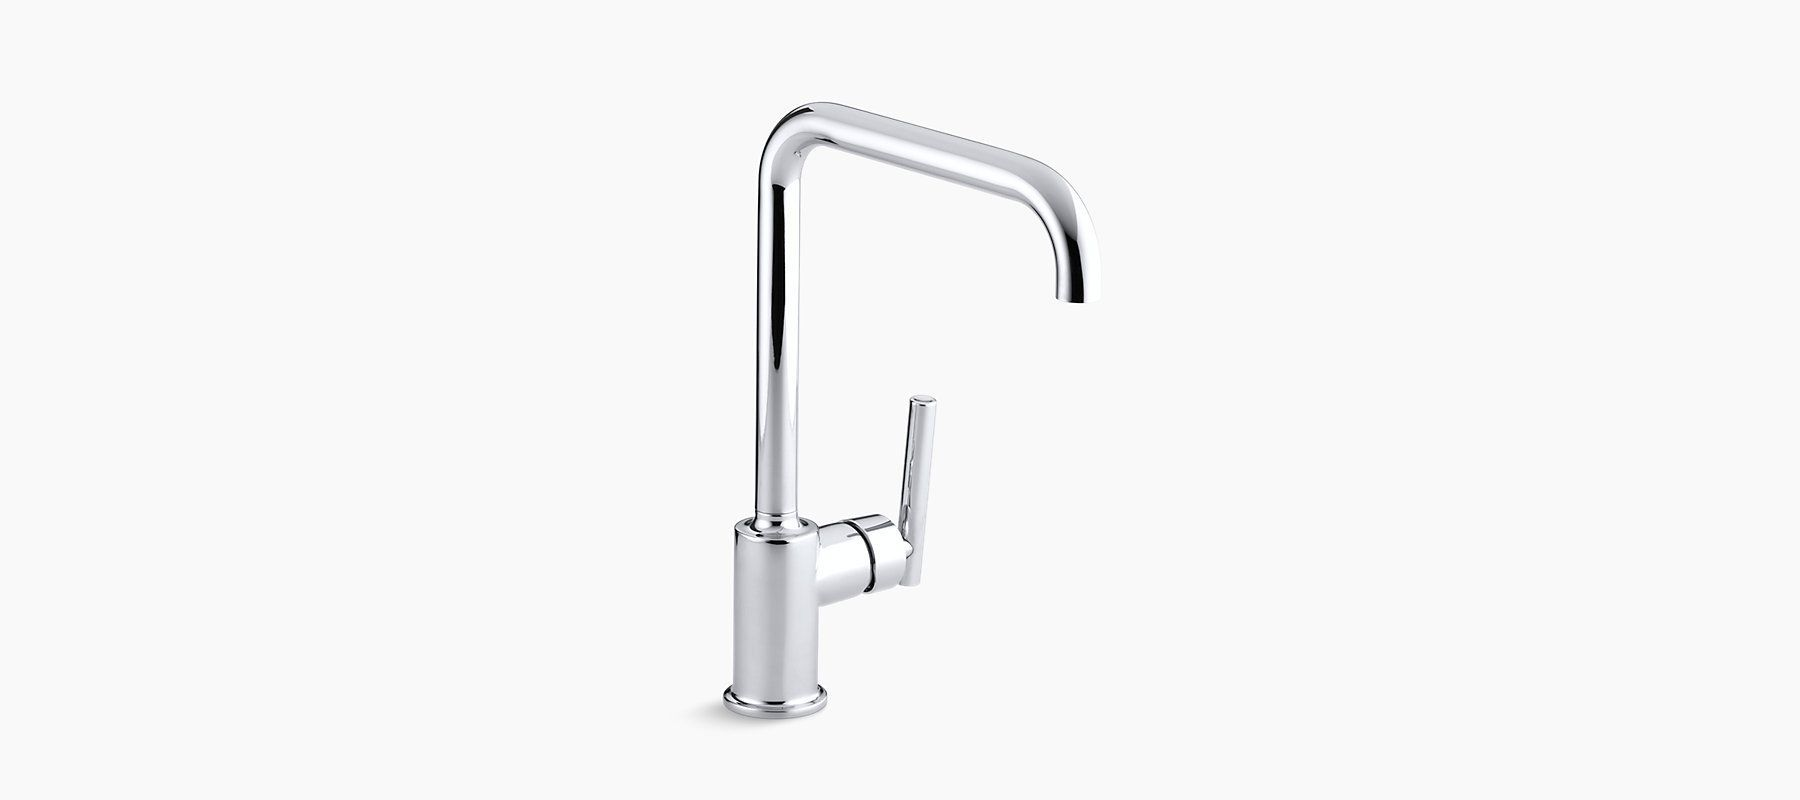 With its higharch swing spout and side lever handle the k